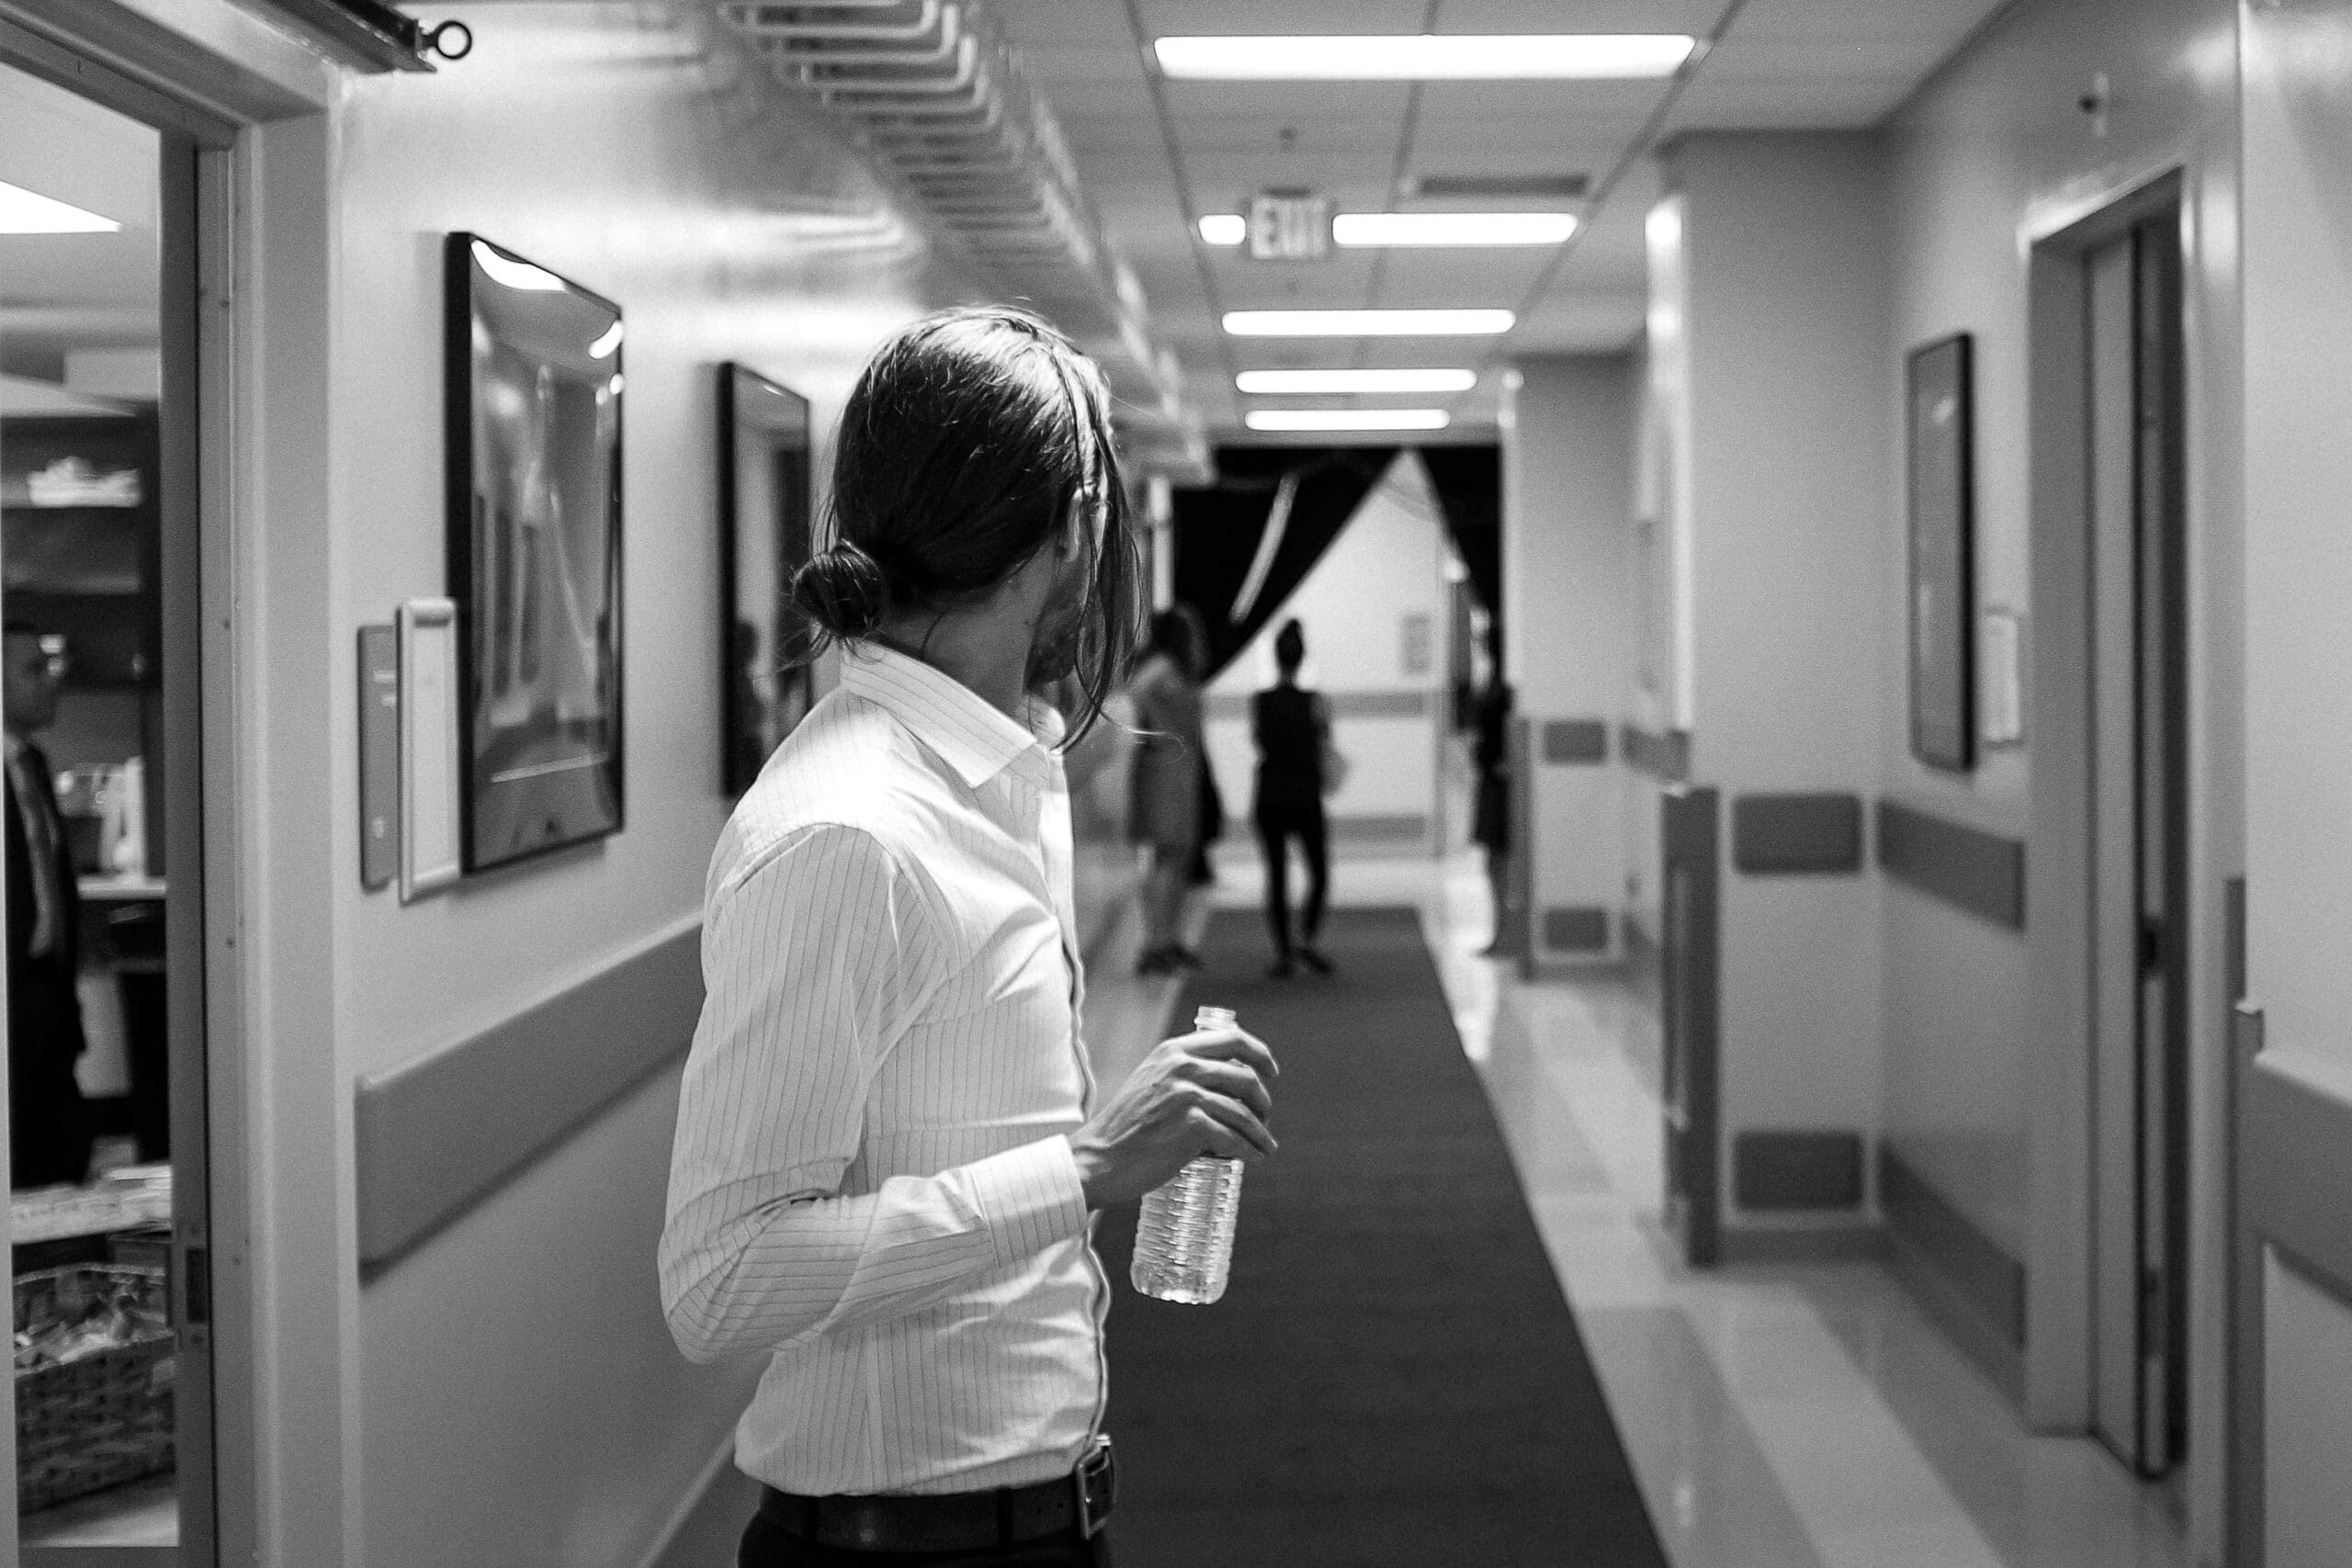 grayscale photography of person wearing white dress shirt